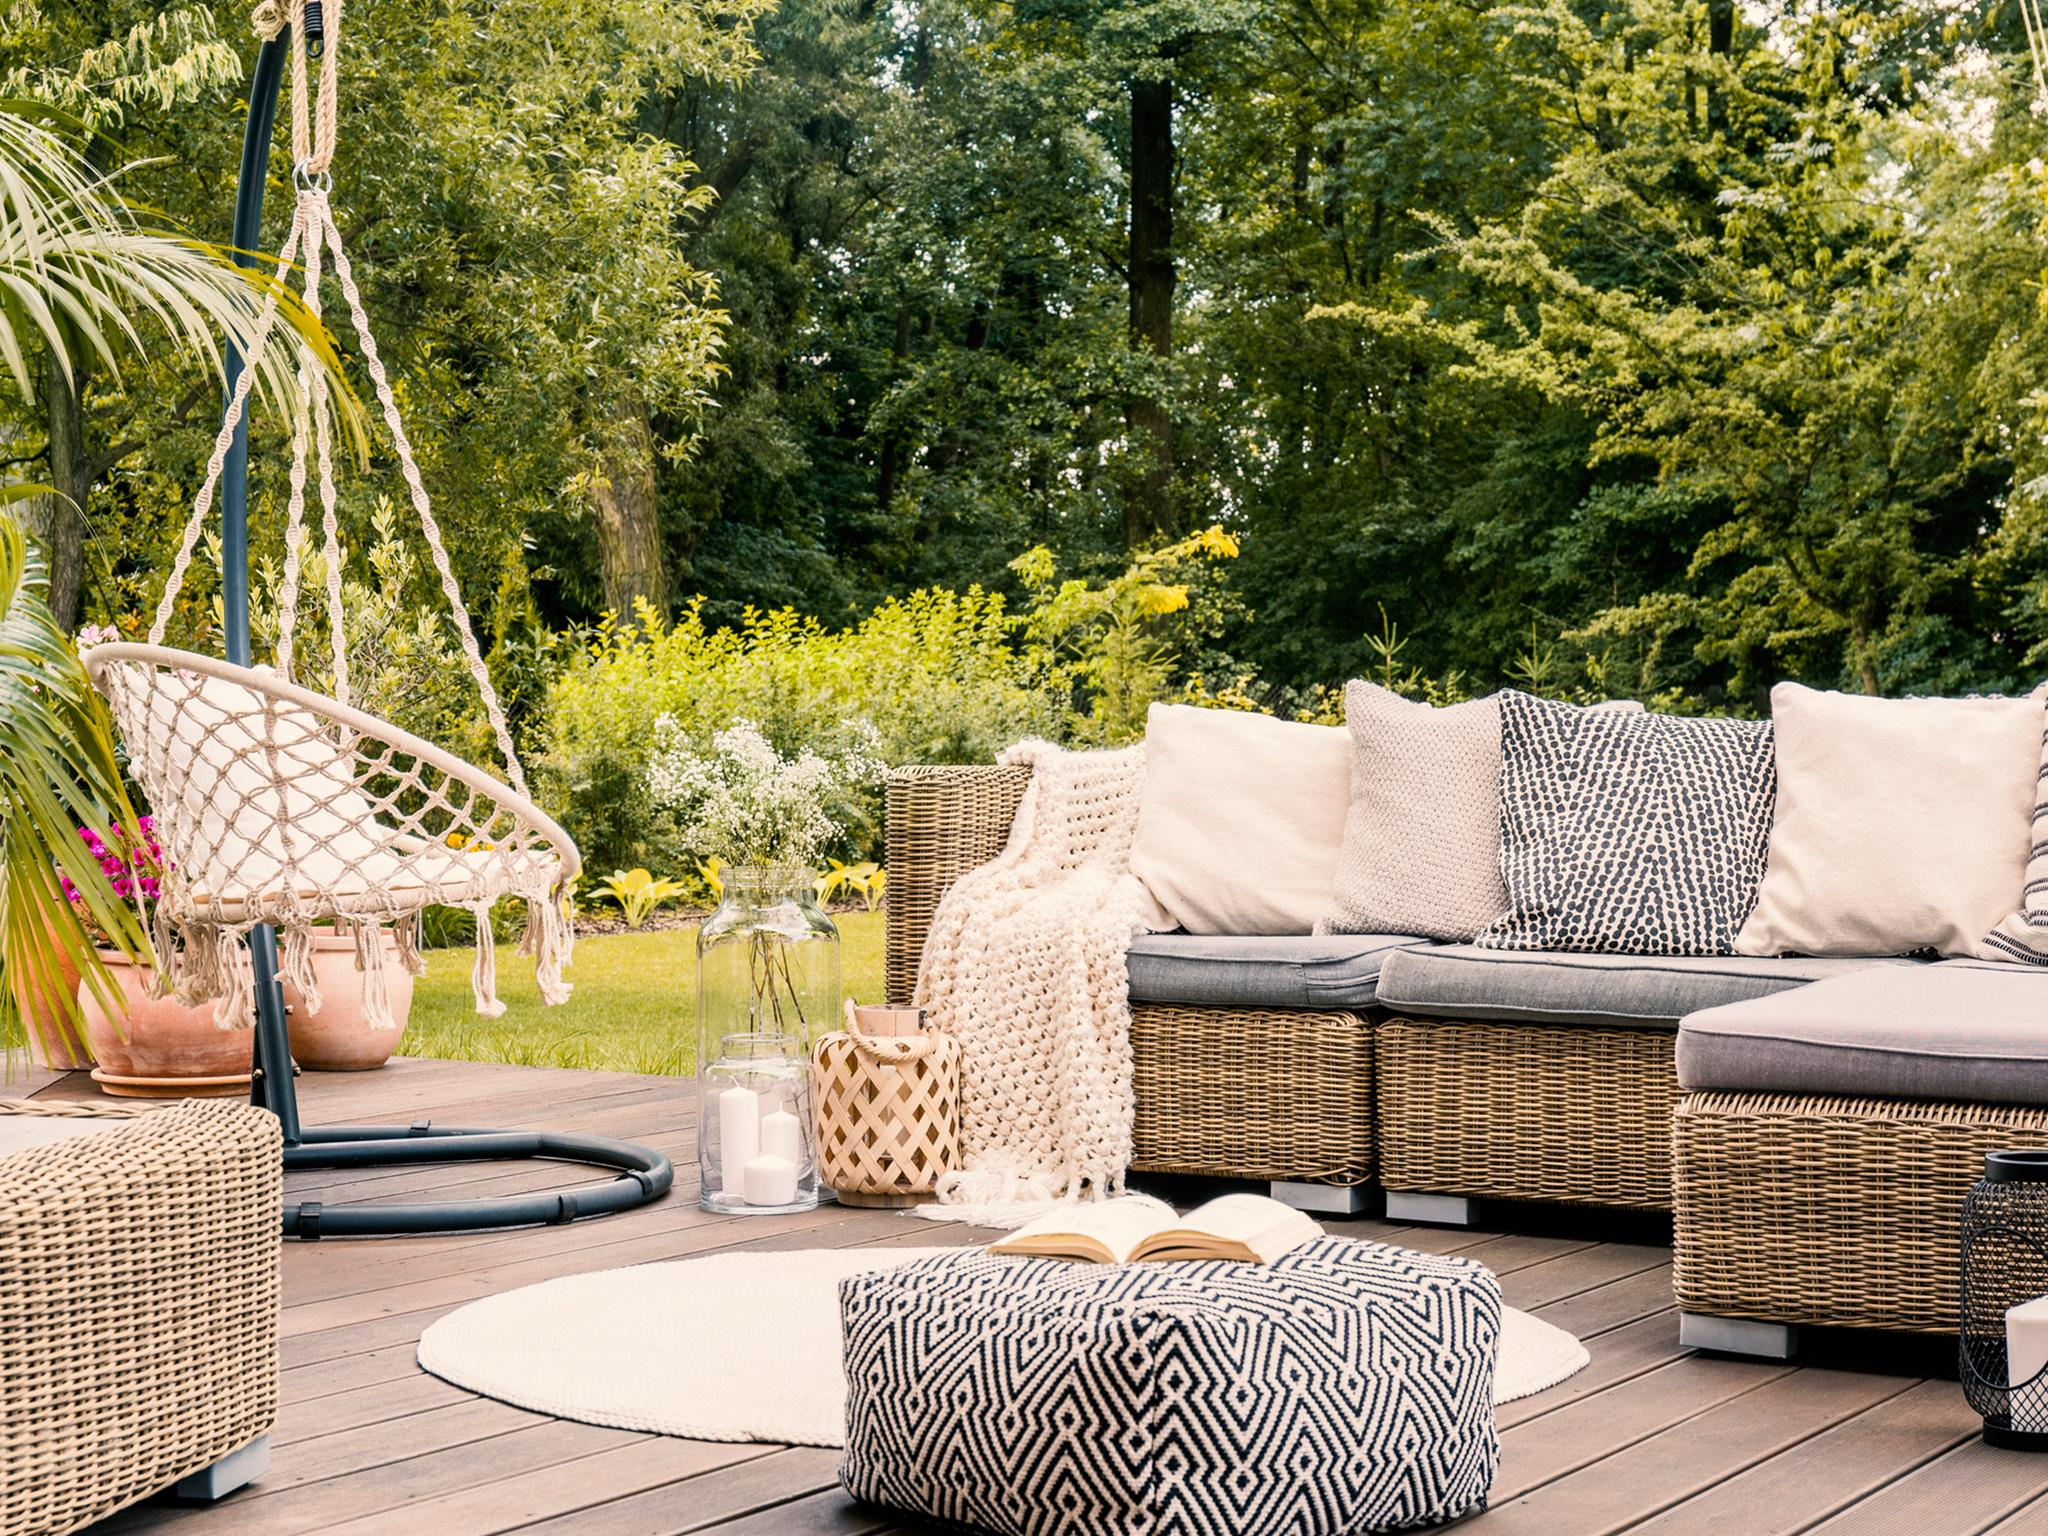 The best garden tools, accessories and furniture for summer  The